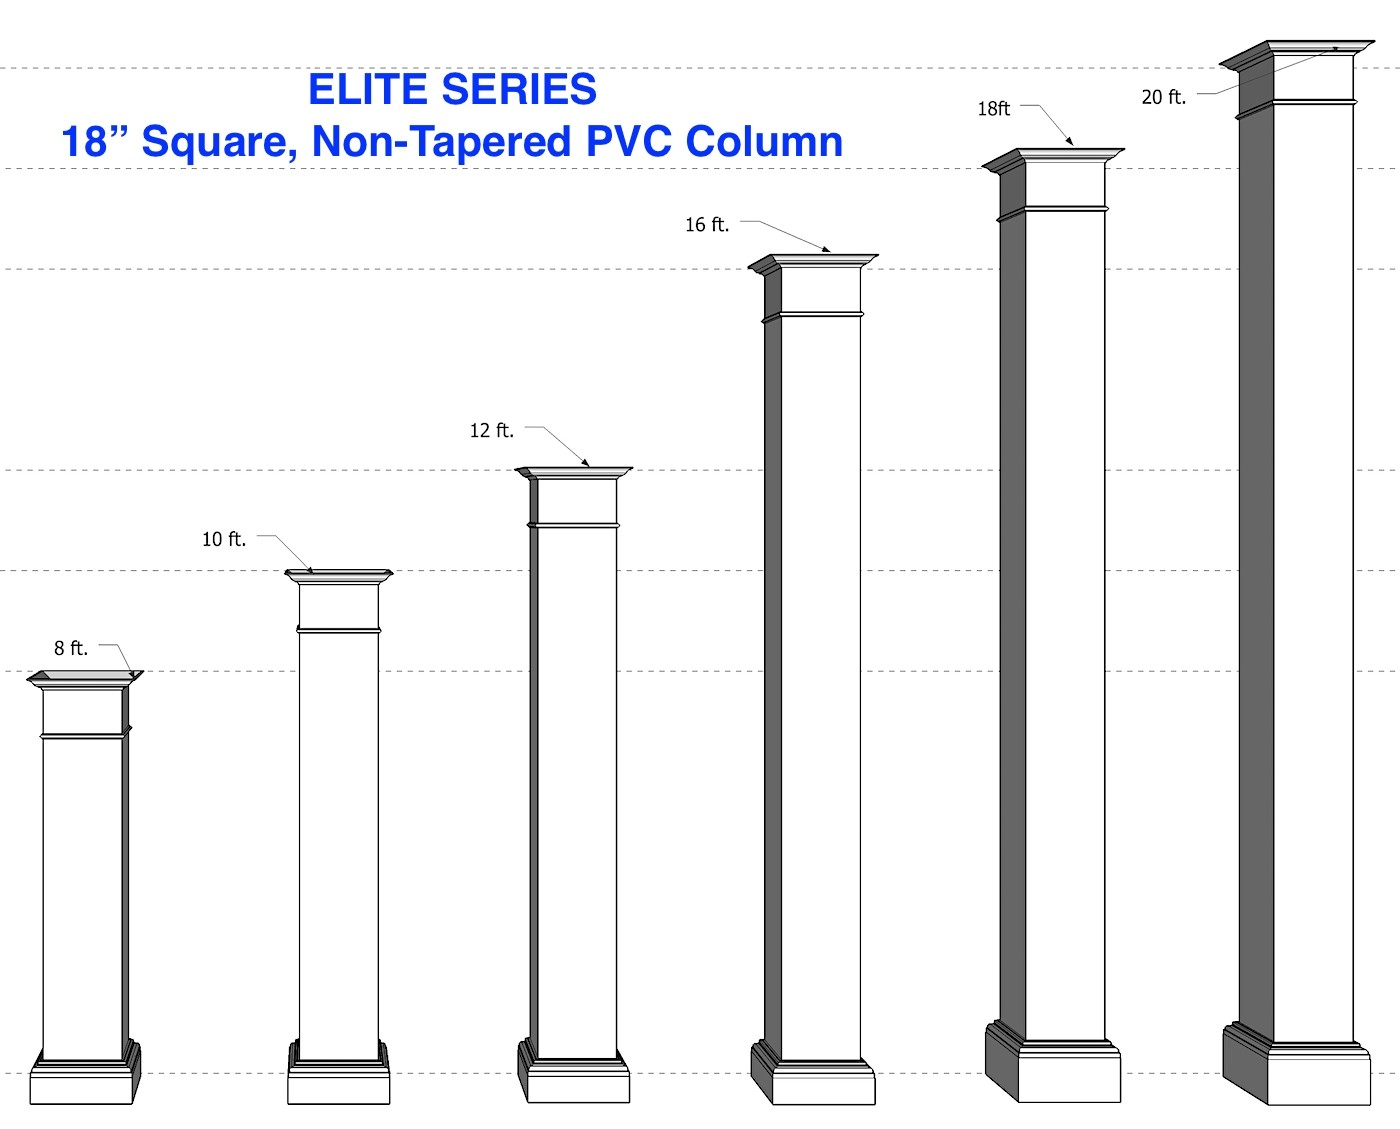 "18"" x 18"" Smooth, Non-Tapered PVC Column"